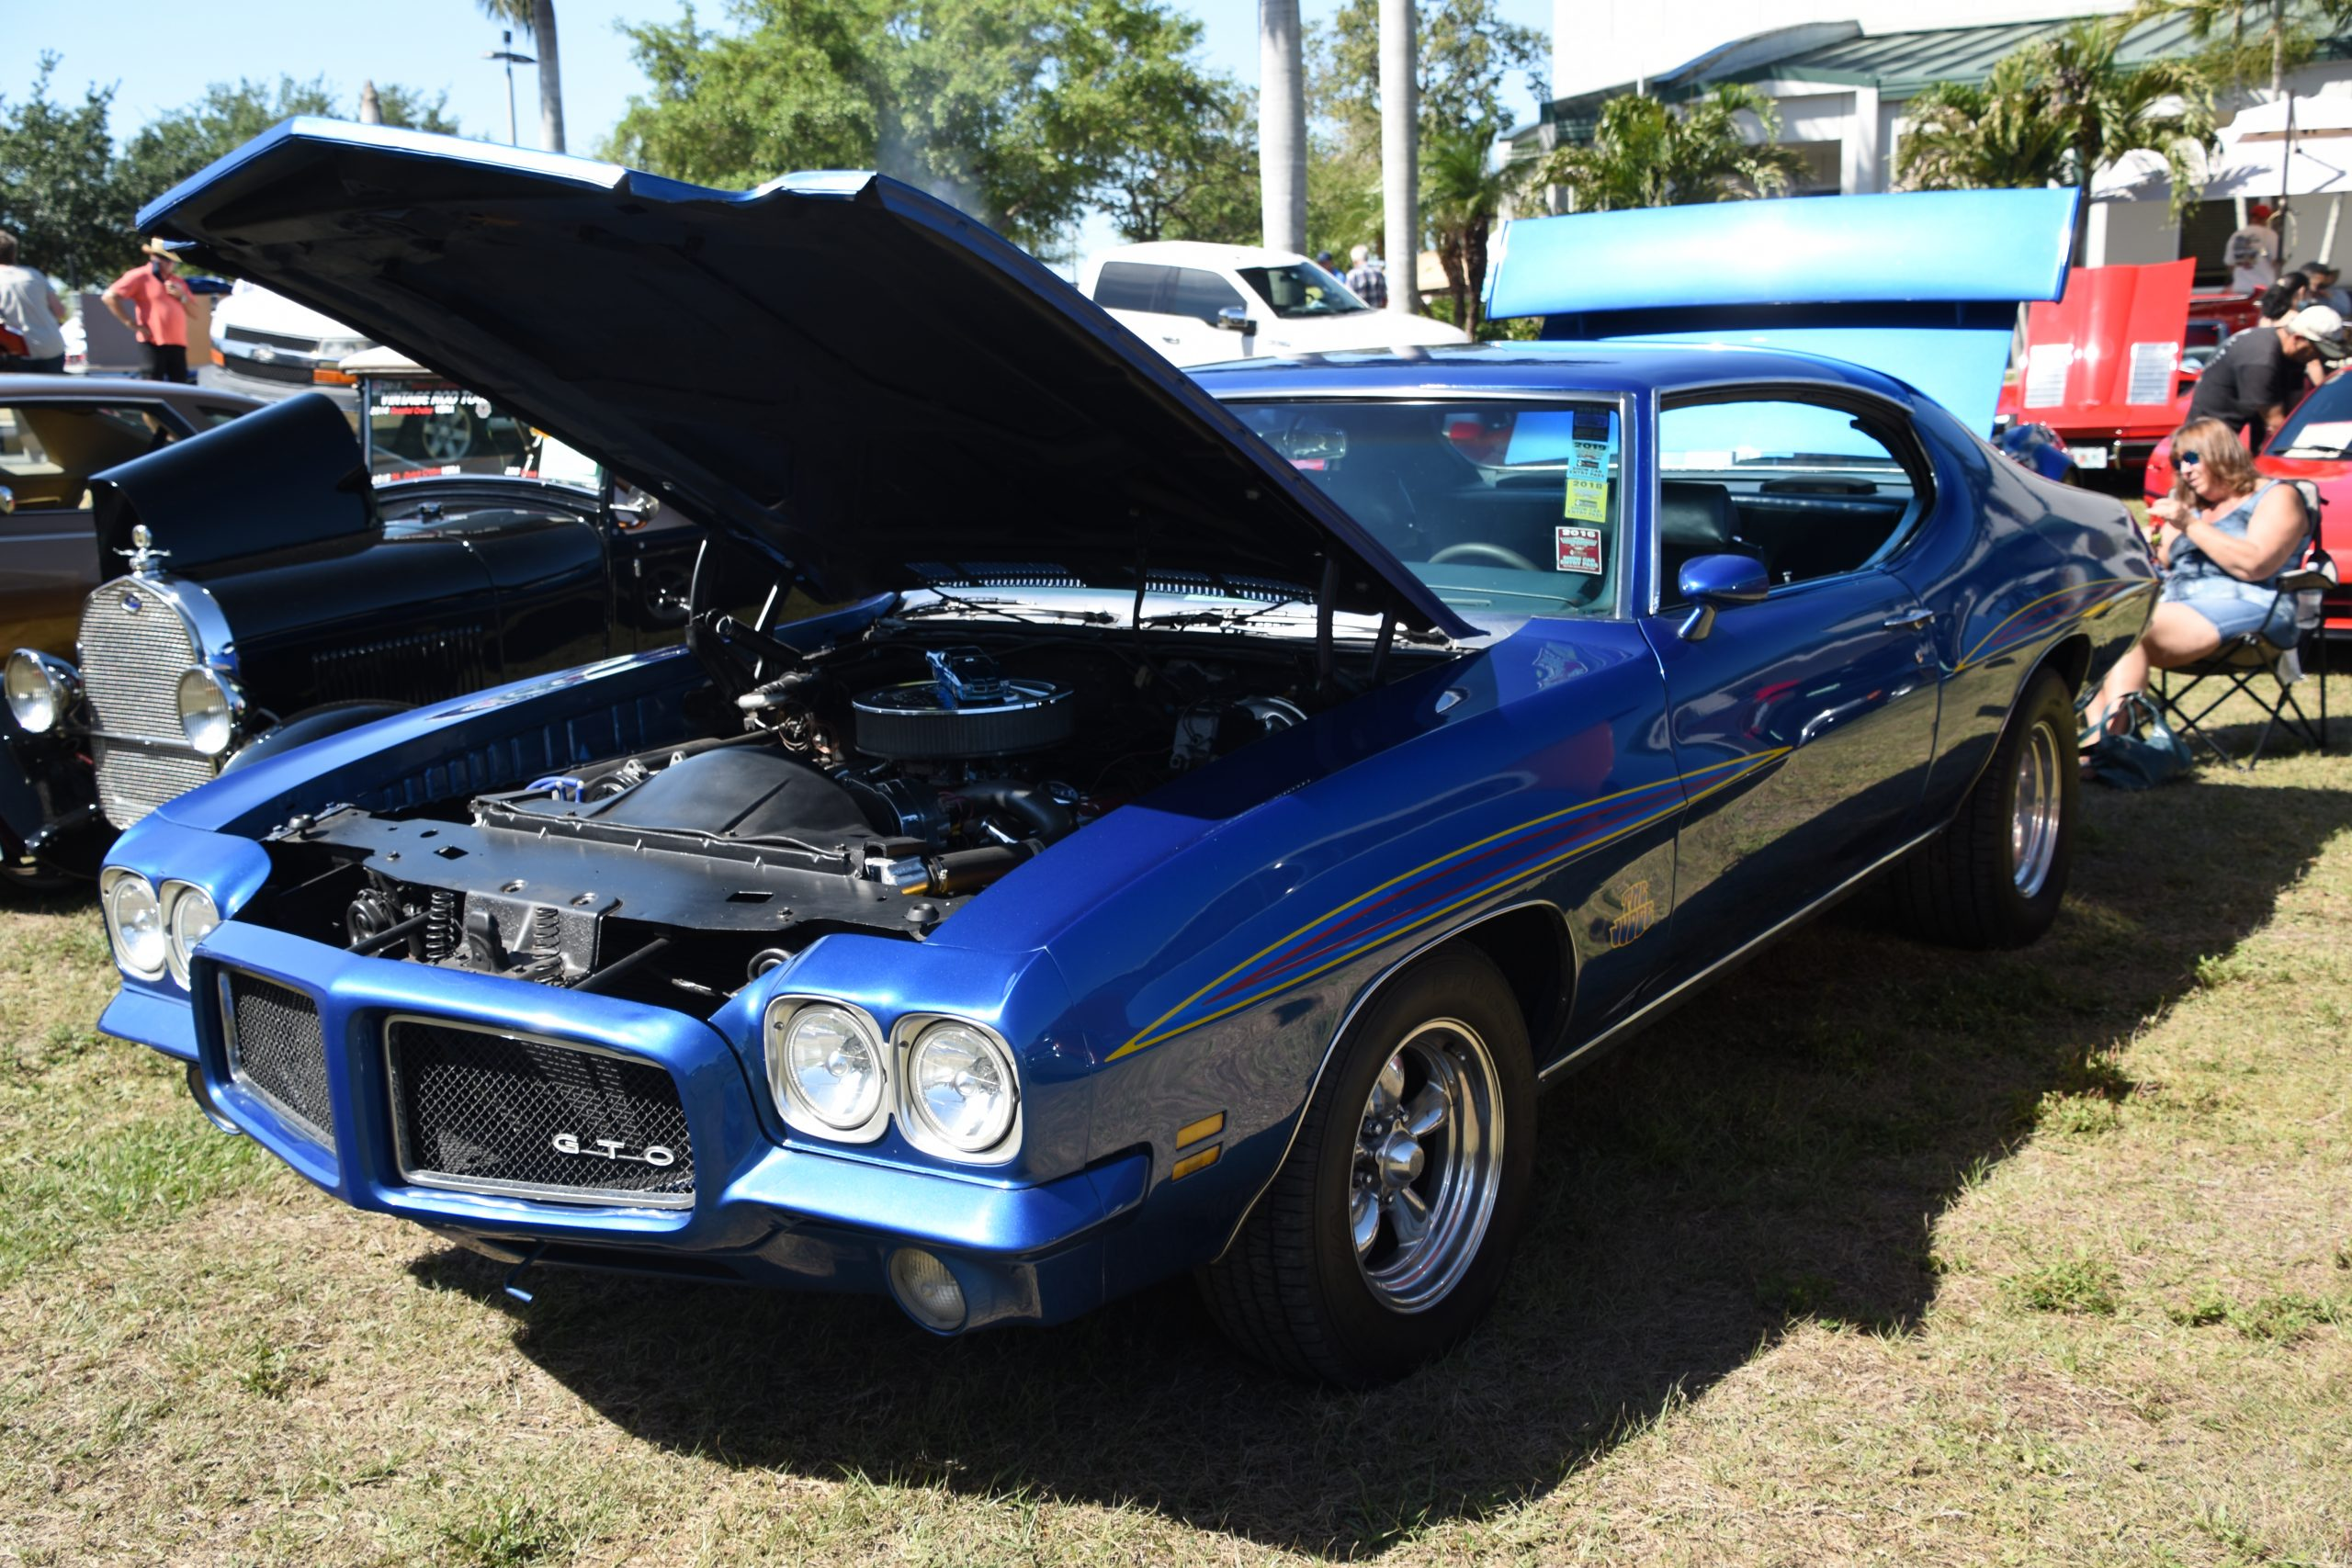 Blue GTO with the hood up